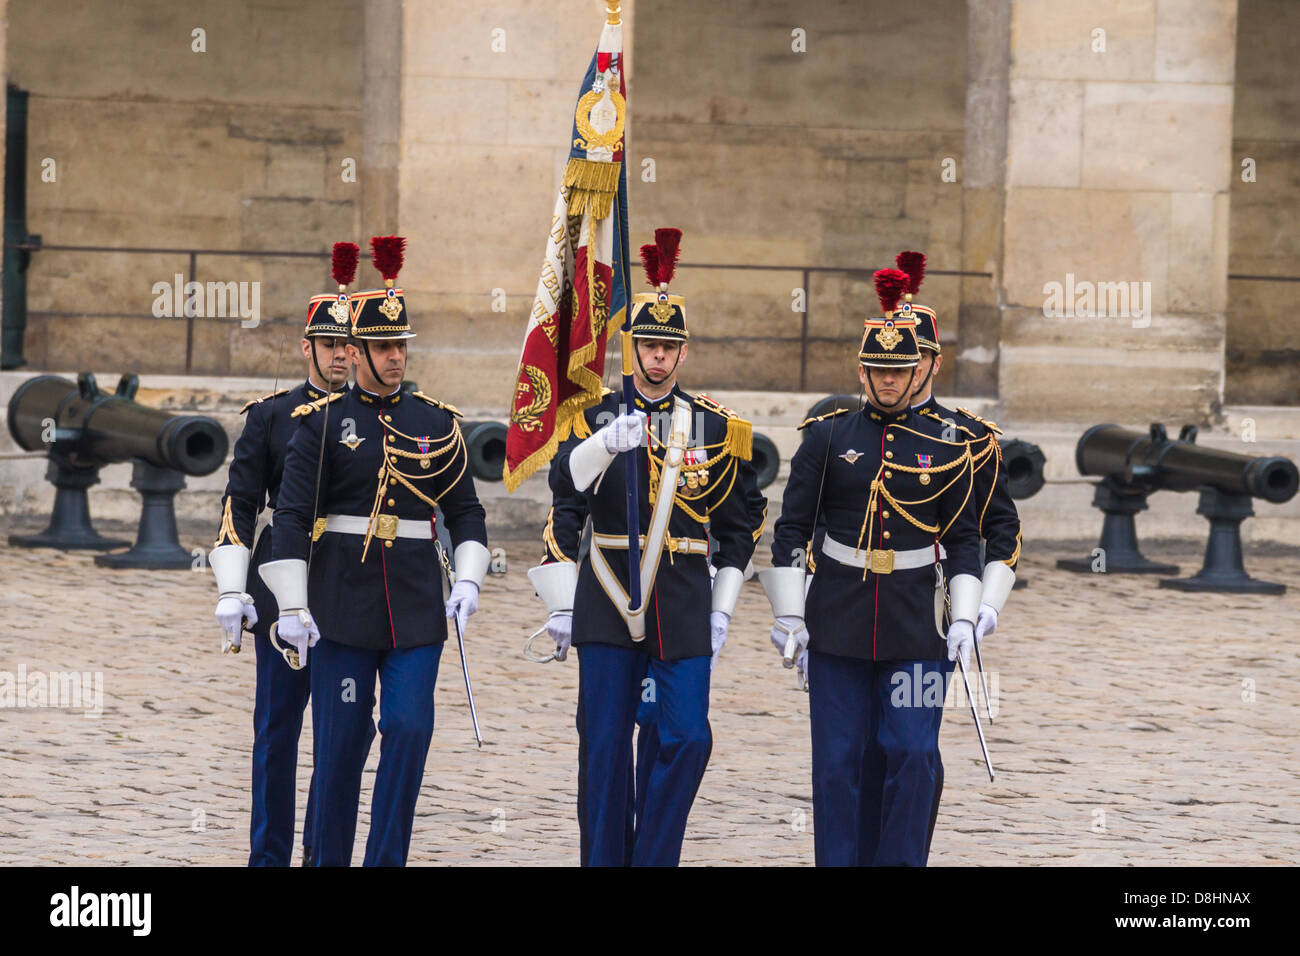 Les Invalides, Paris, France. Soldiers of a Honor Guard during an official reception for the President of Poland. Stock Photo